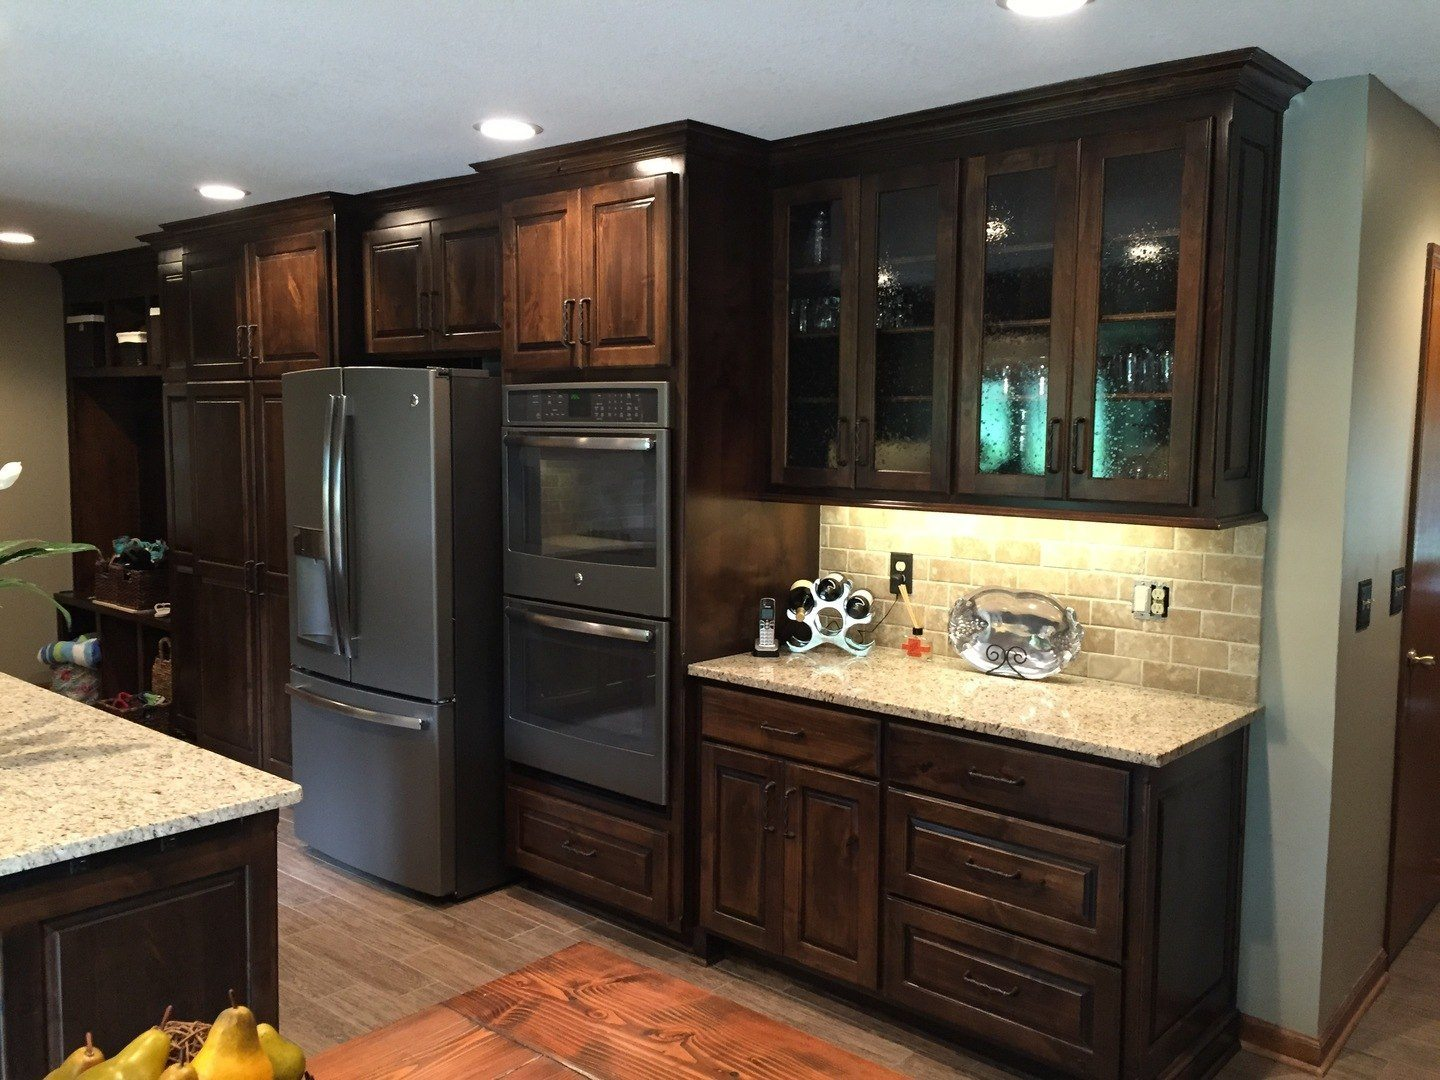 Overland Park And Olathe Kitchen Remodeling